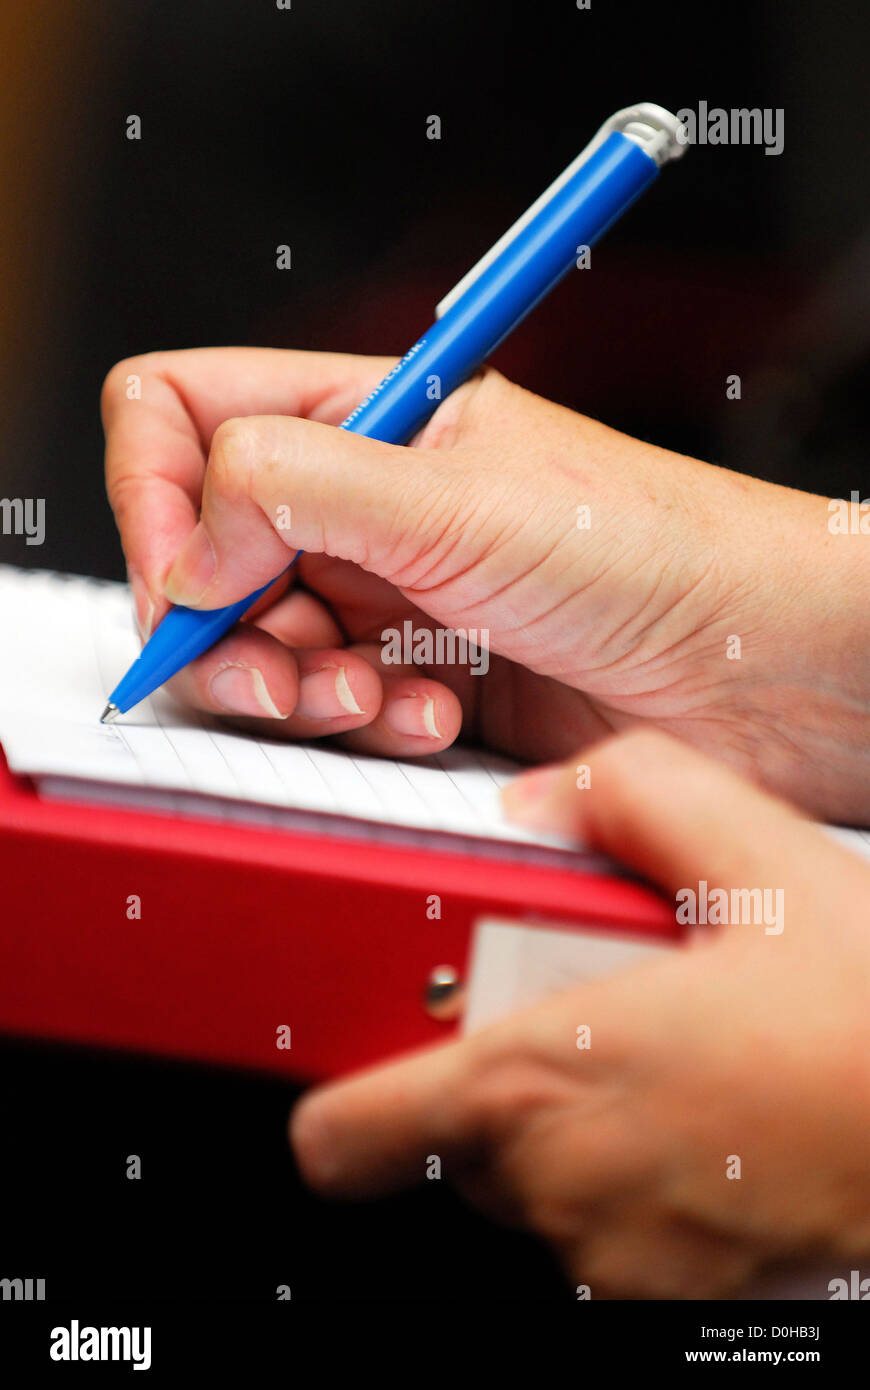 Delegate at a carers conference taking notes, London, UK. - Stock Image